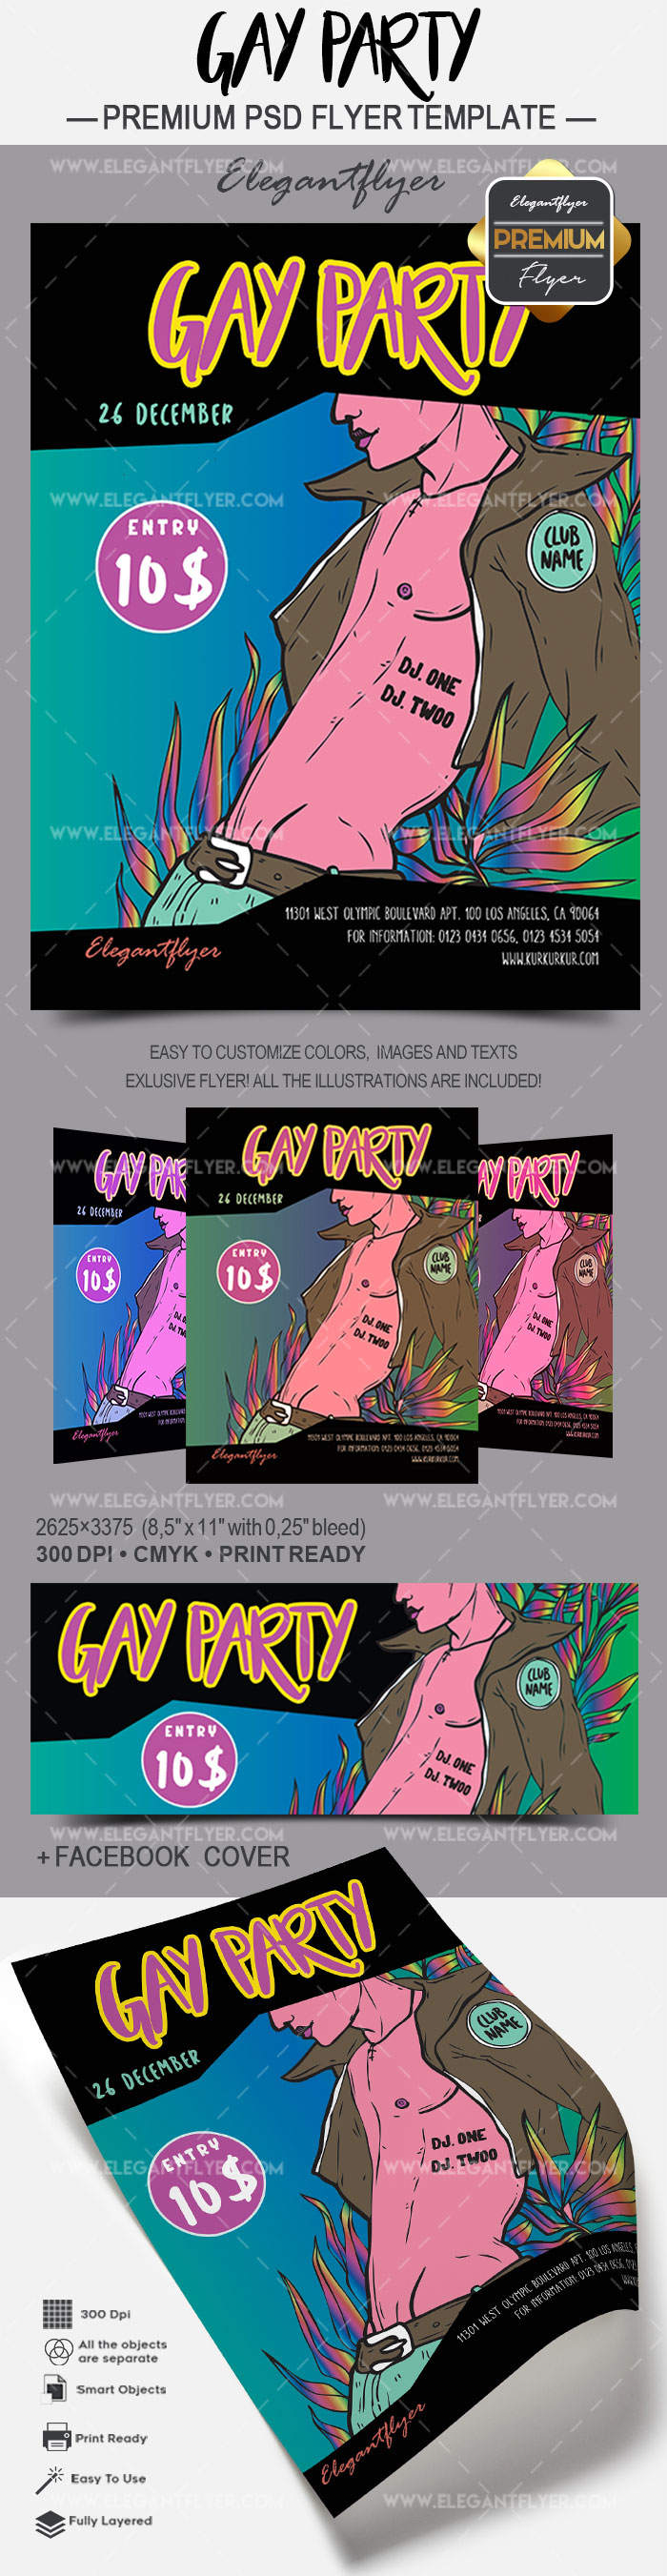 Invitation Flyer for Gay Party